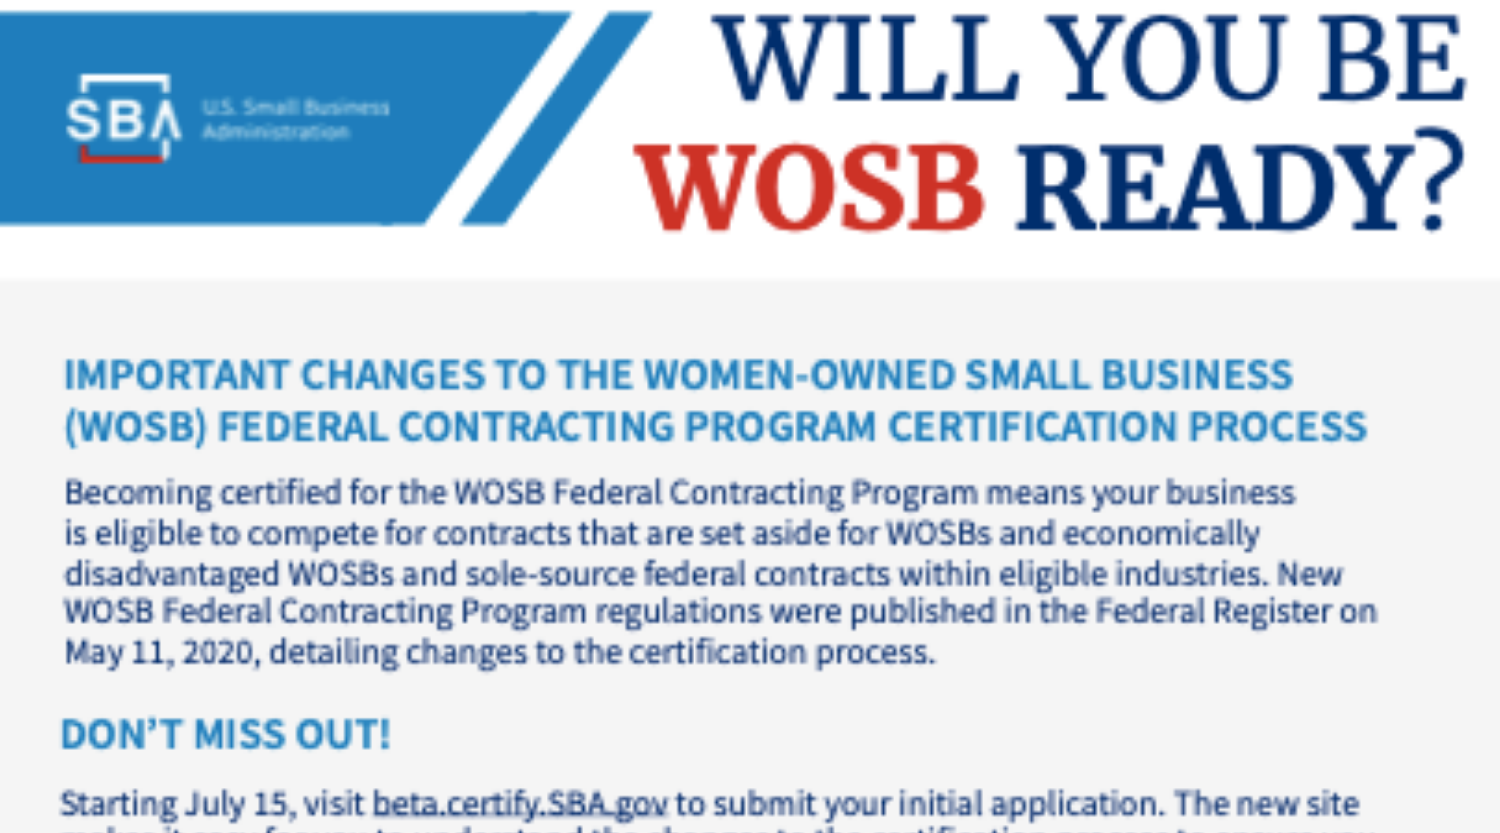 Women Owned Small Business Certification